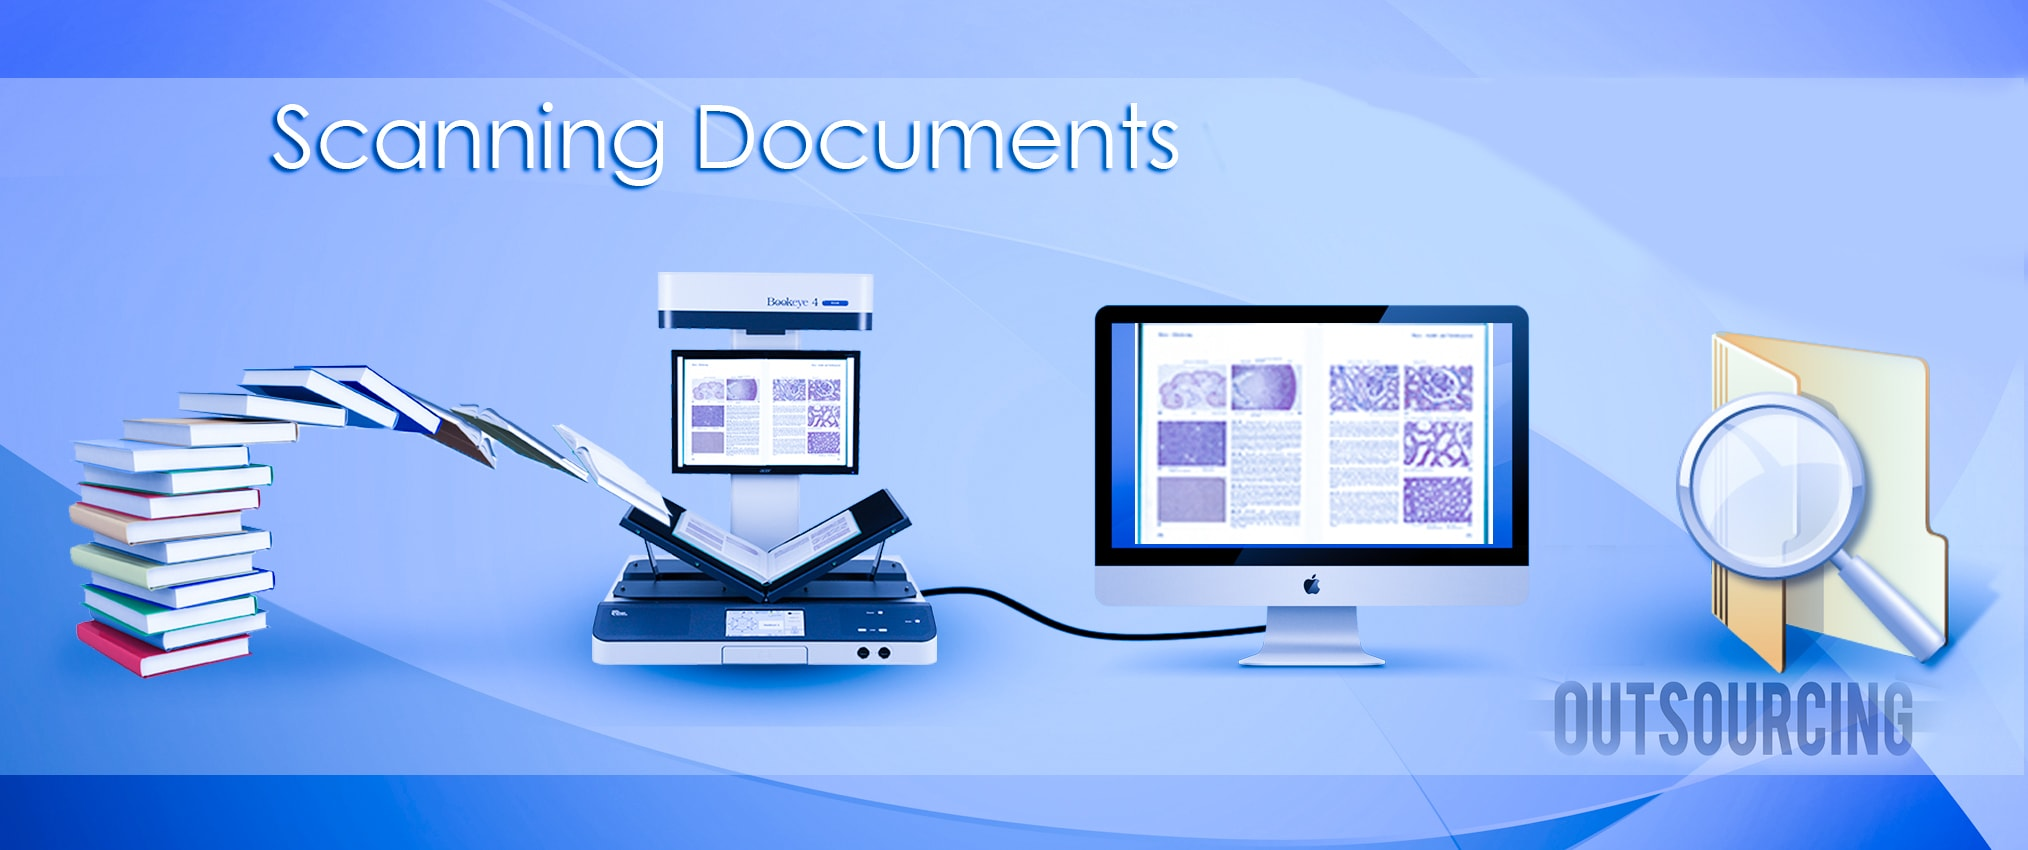 outsourcing document scanning service help data management